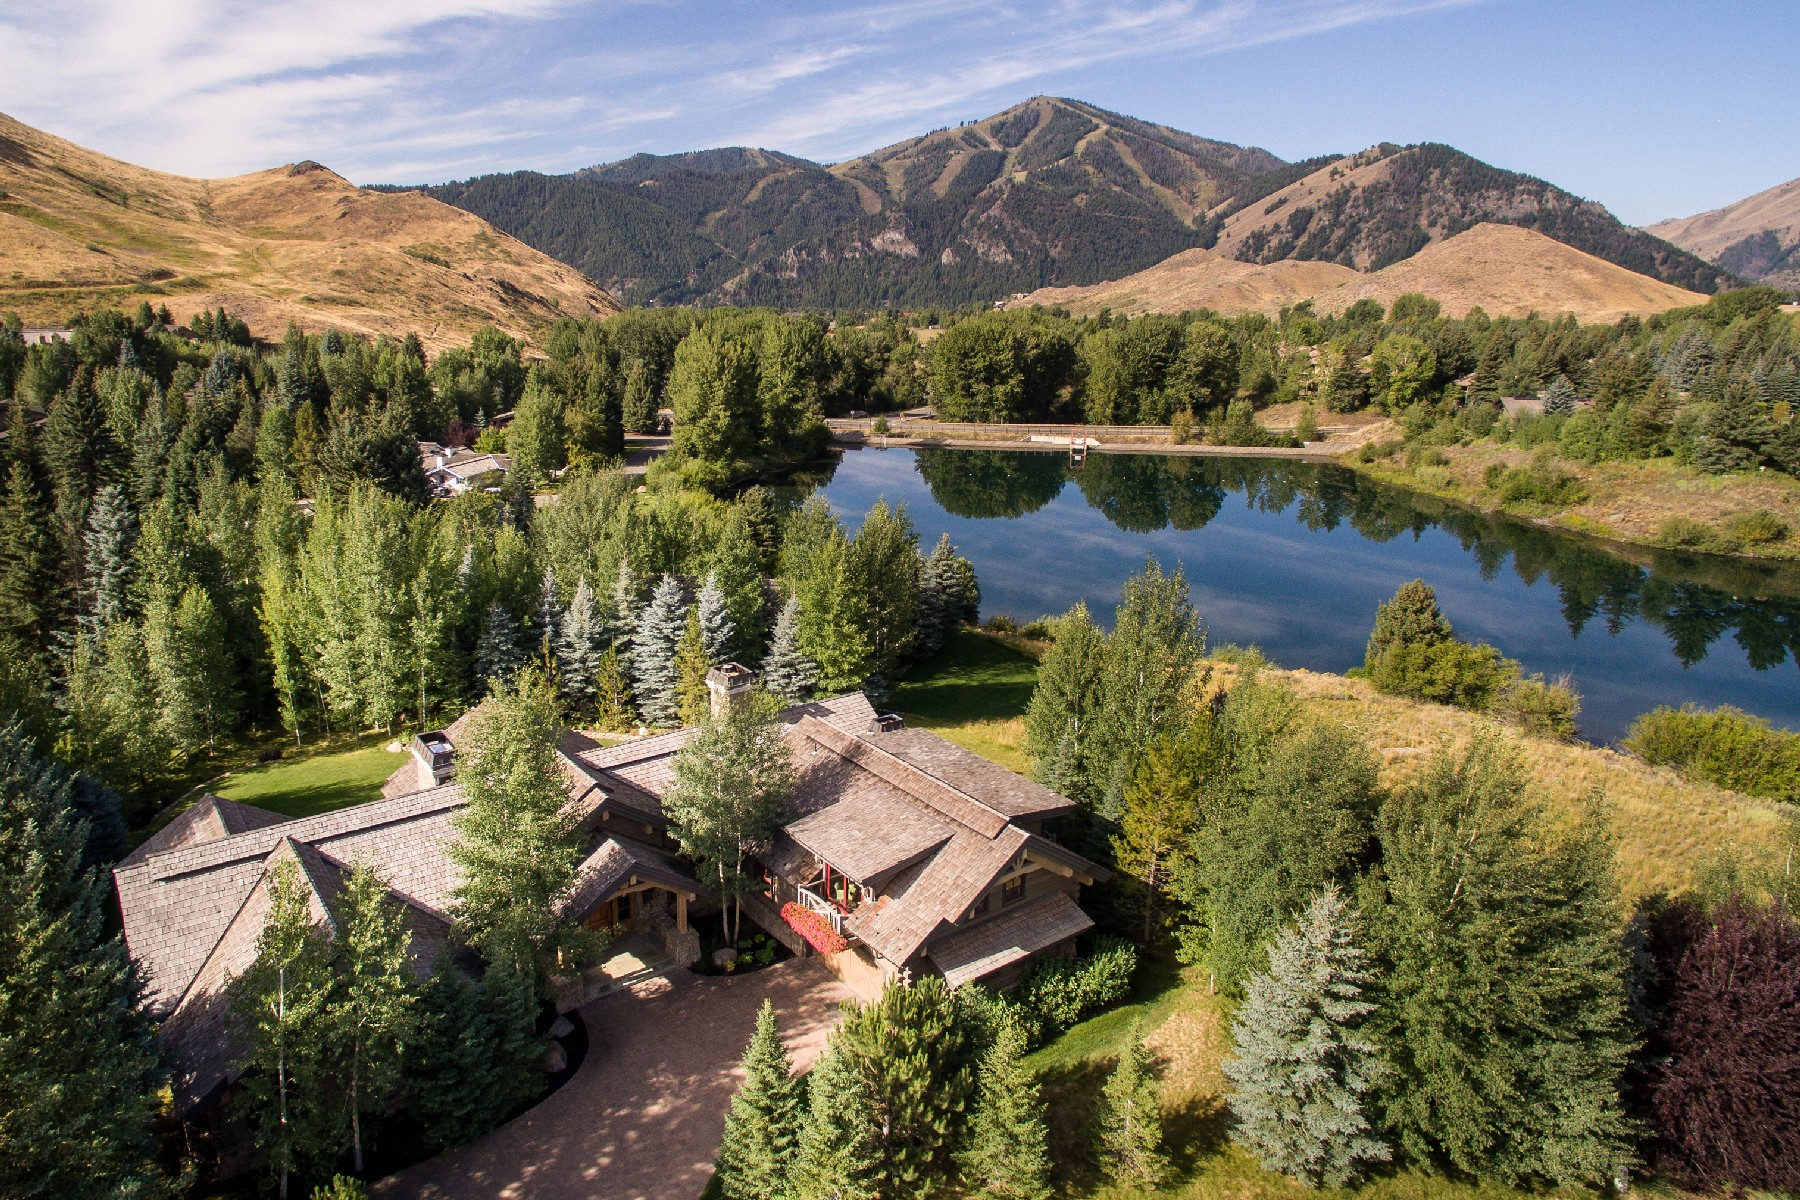 Single Family Home for Sale at In The Heart Of Sun Valley 7 Old Dollar Road Sun Valley, Idaho 83353 United States